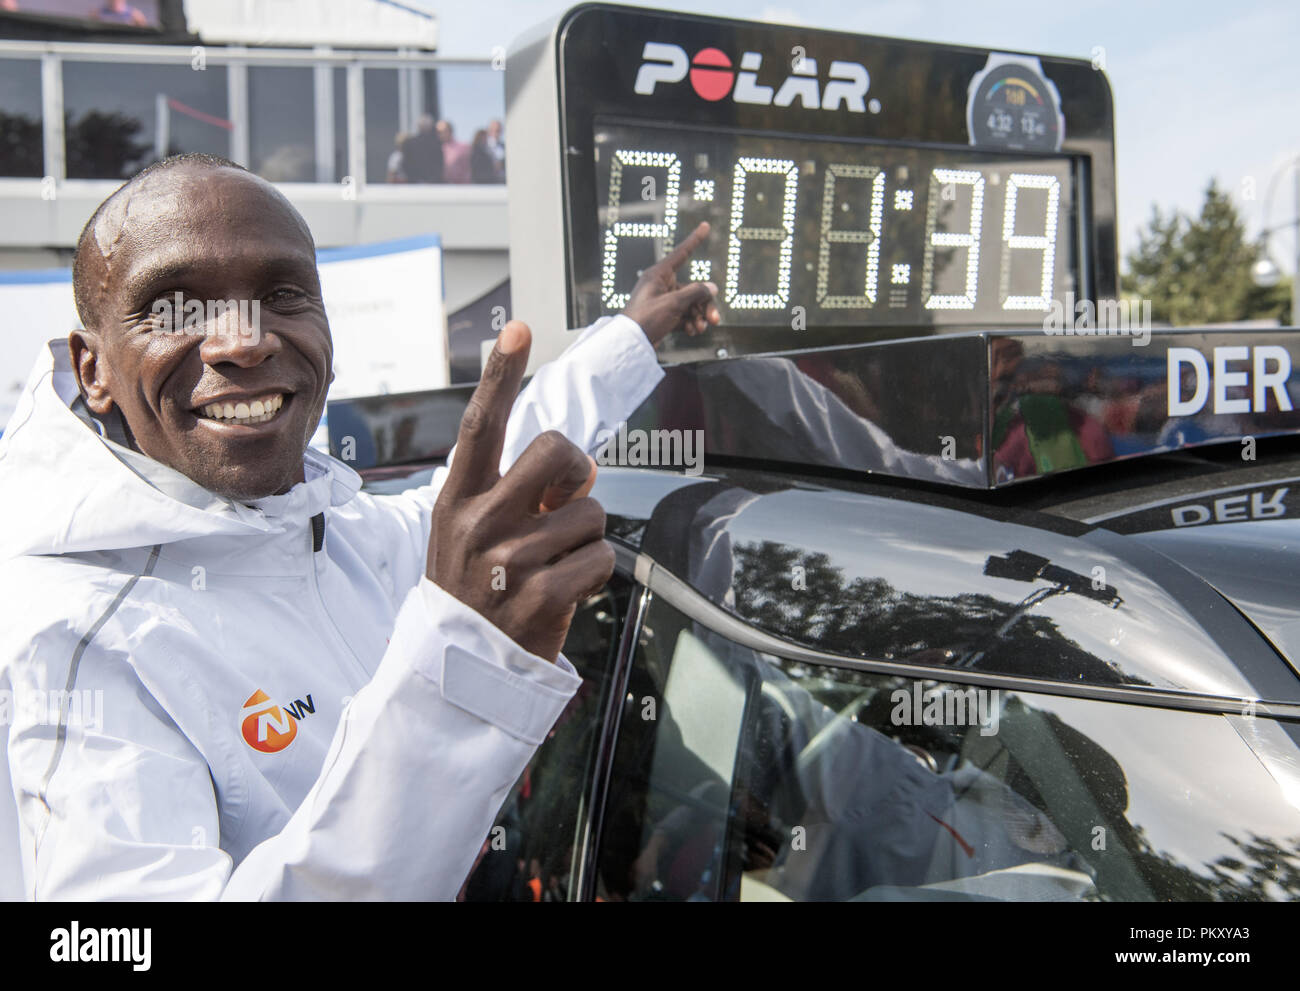 Berlin, Germany. 16th September 2018. The Kenyan Eliud Kipchoge is happy about his world record time of 2:01:39 during the award ceremony at the 45th BMW Berlin Marathon. Photo: Soeren Stache/dpa Credit: dpa picture alliance/Alamy Live News Credit: dpa picture alliance/Alamy Live News - Stock Image